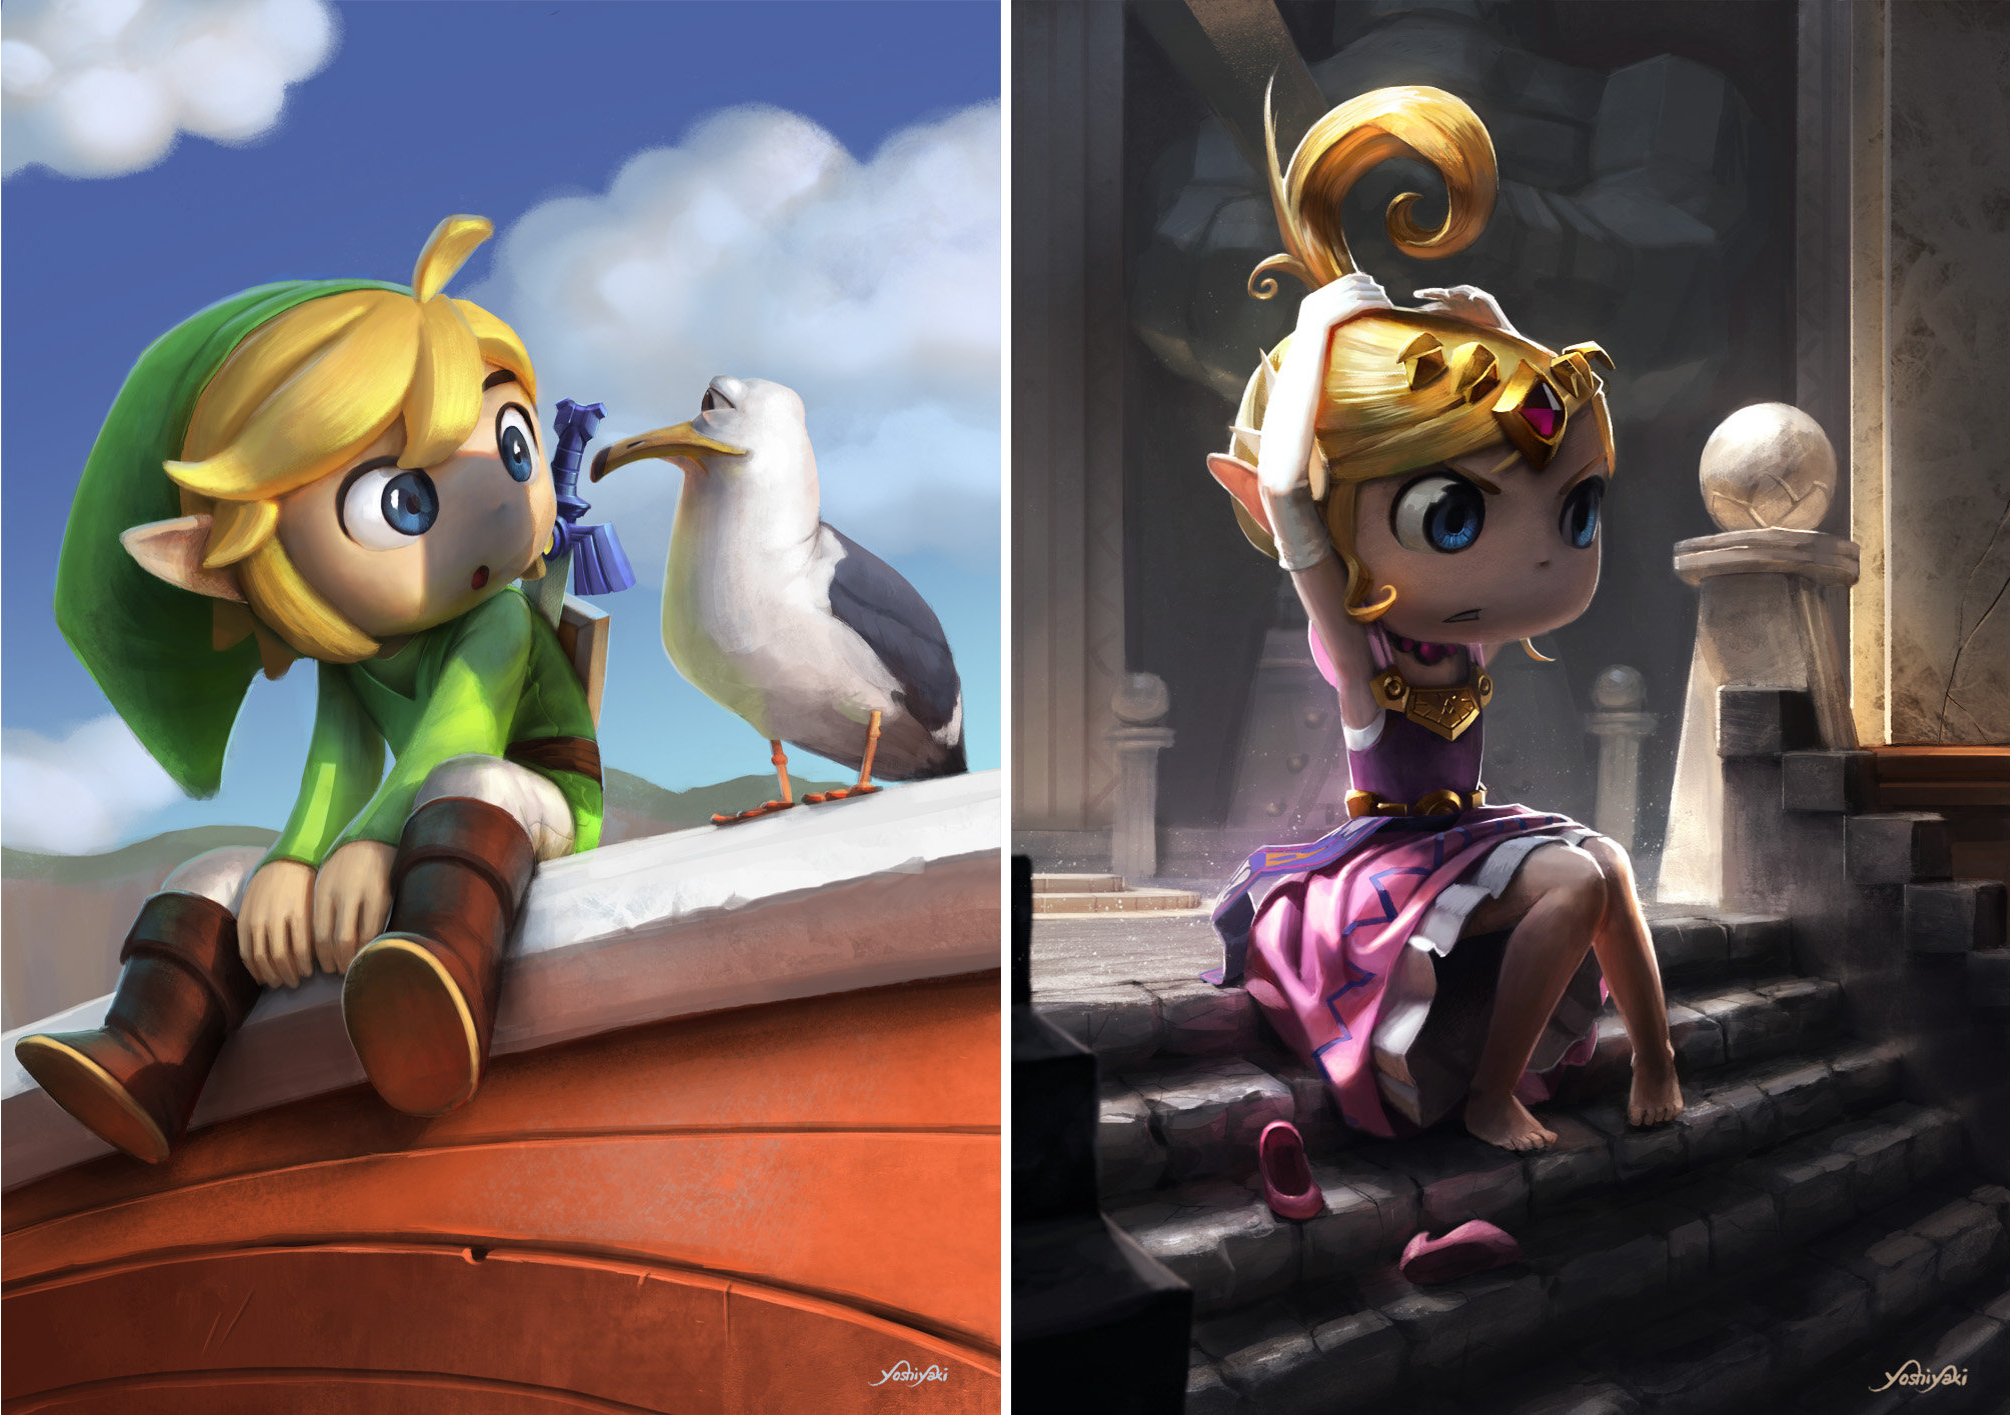 If DreamWorks made The Legend of Zelda, it might look like these pieces by Cassio Yoshiyaki.